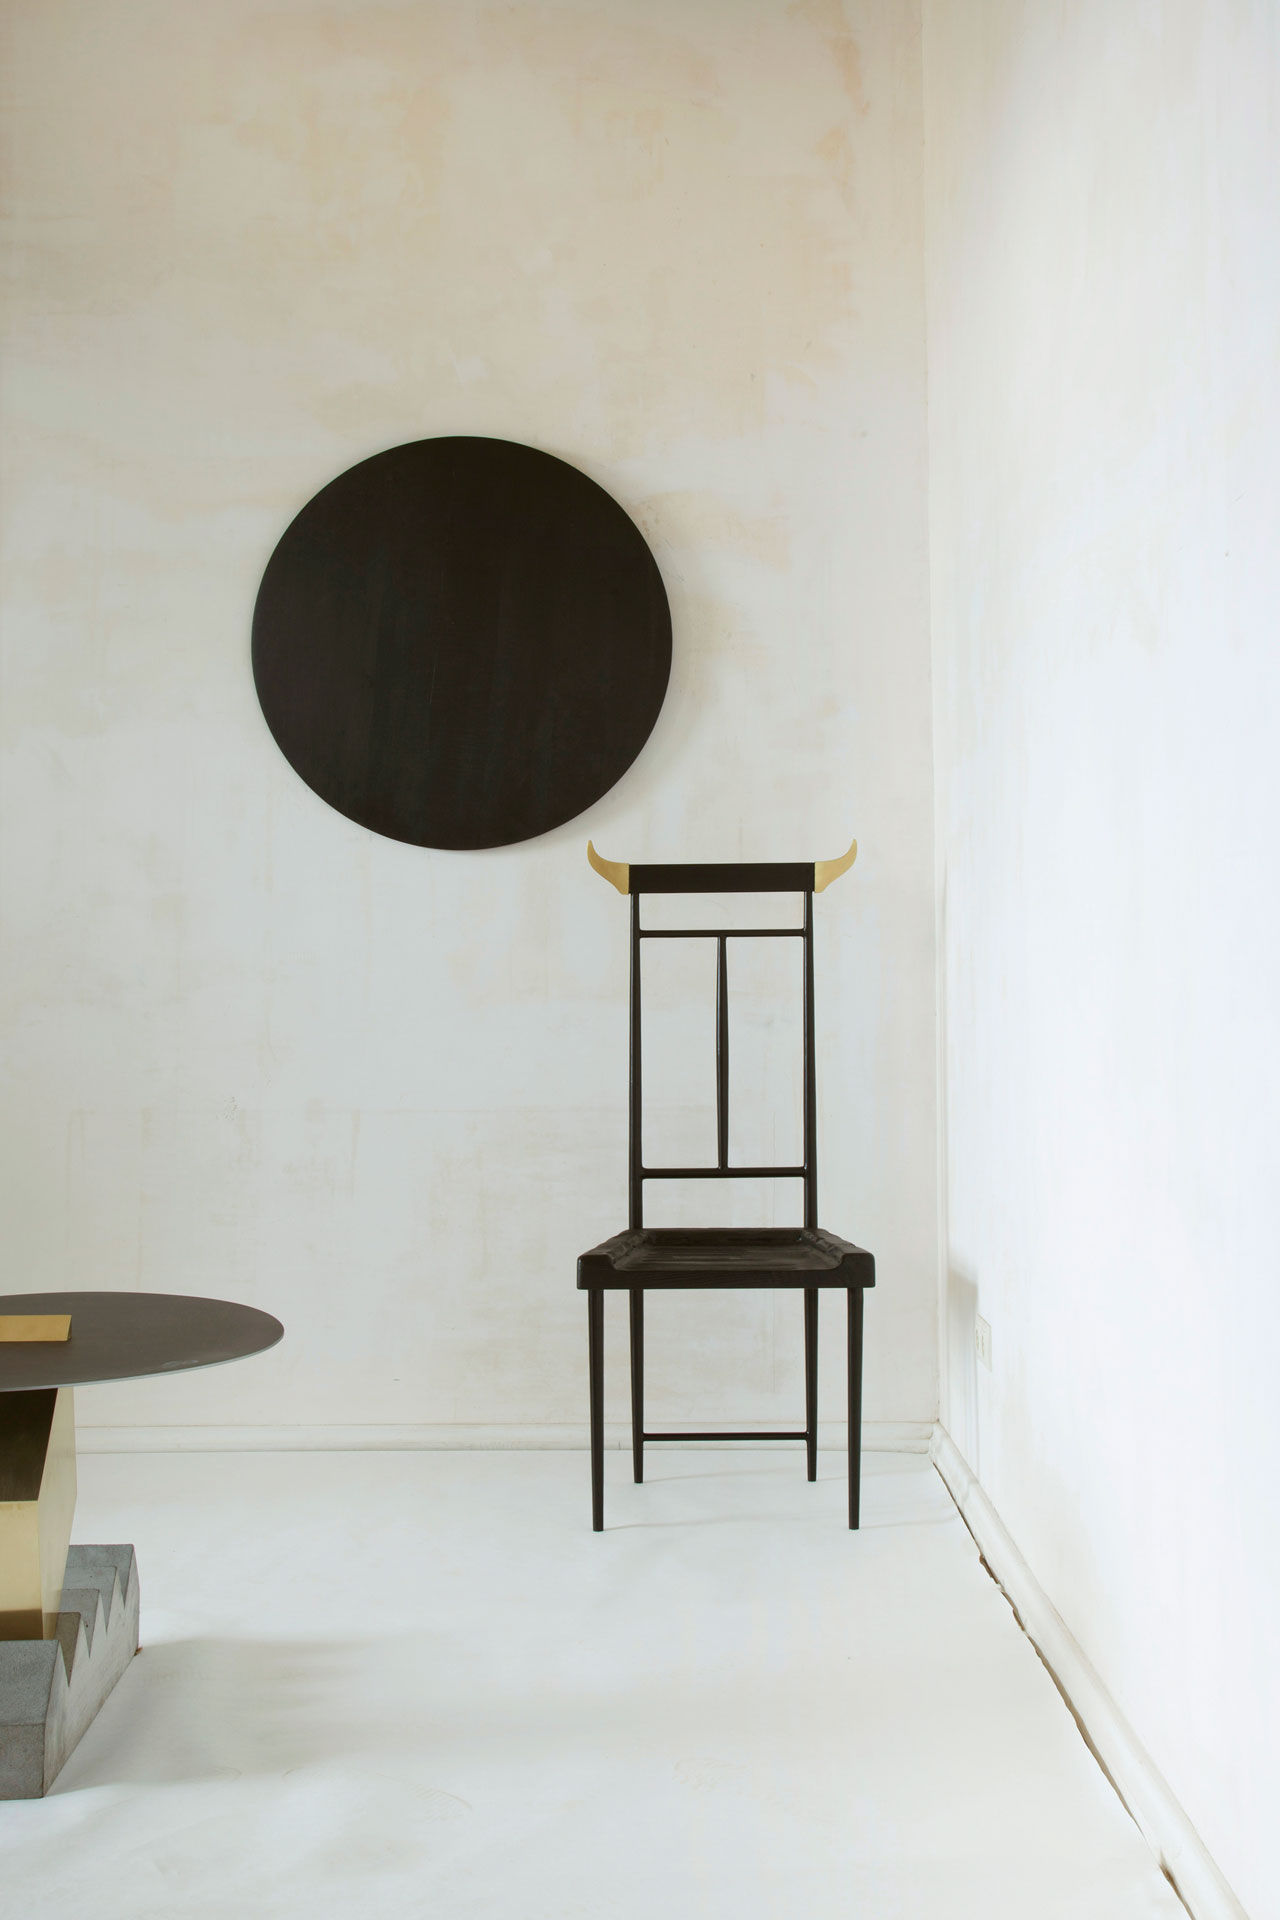 WILD MINIMALISM furniturecollectionby Rooms.